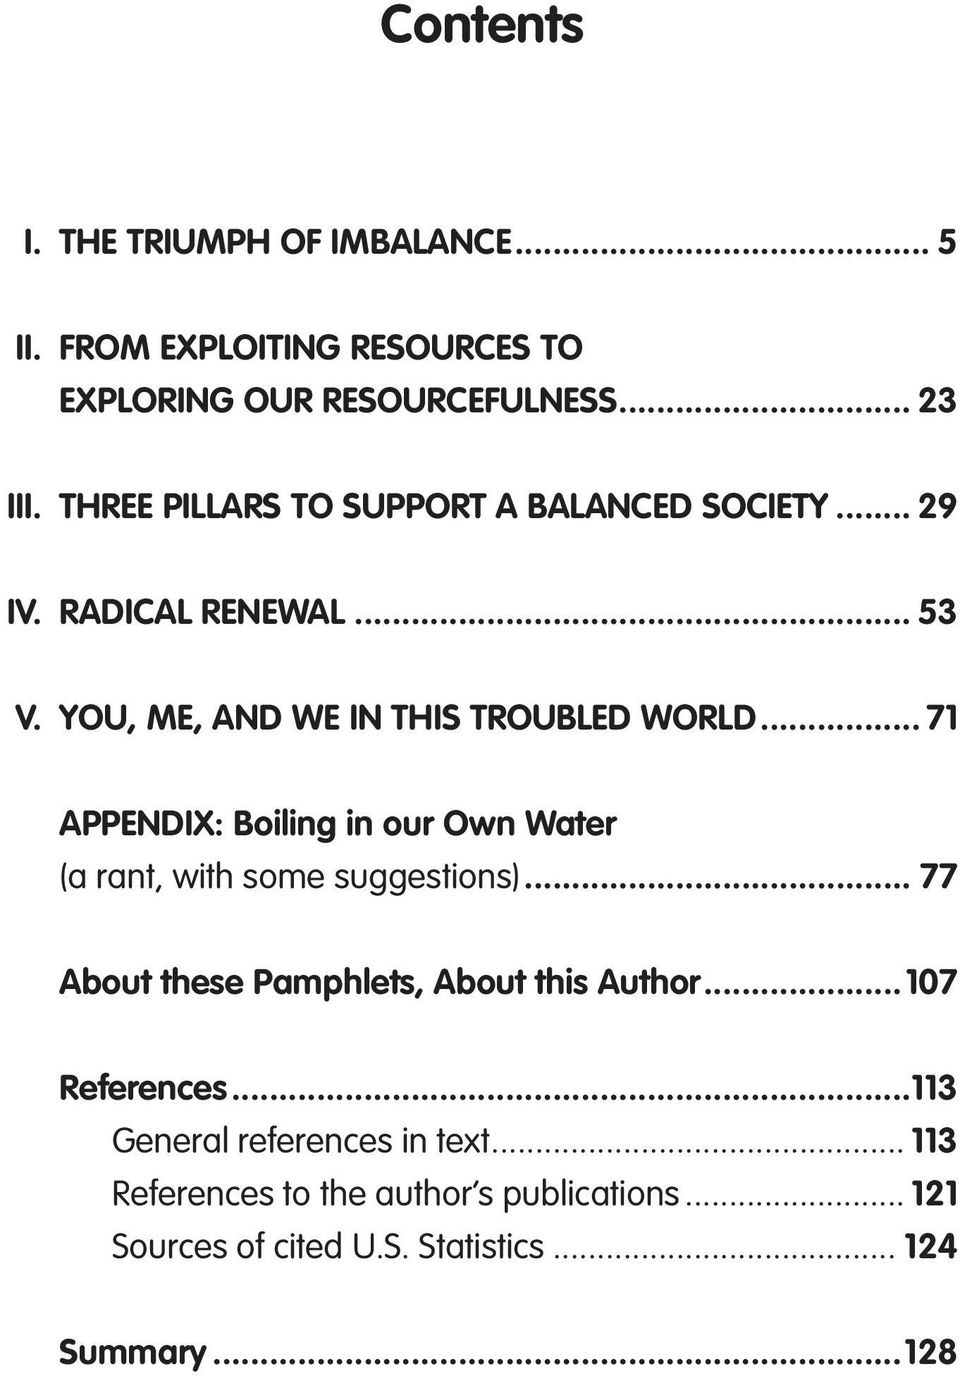 .. 71 APPENDIX: Boiling in our Own Water (a rant, with some suggestions)... 77 About these Pamphlets, About this Author.